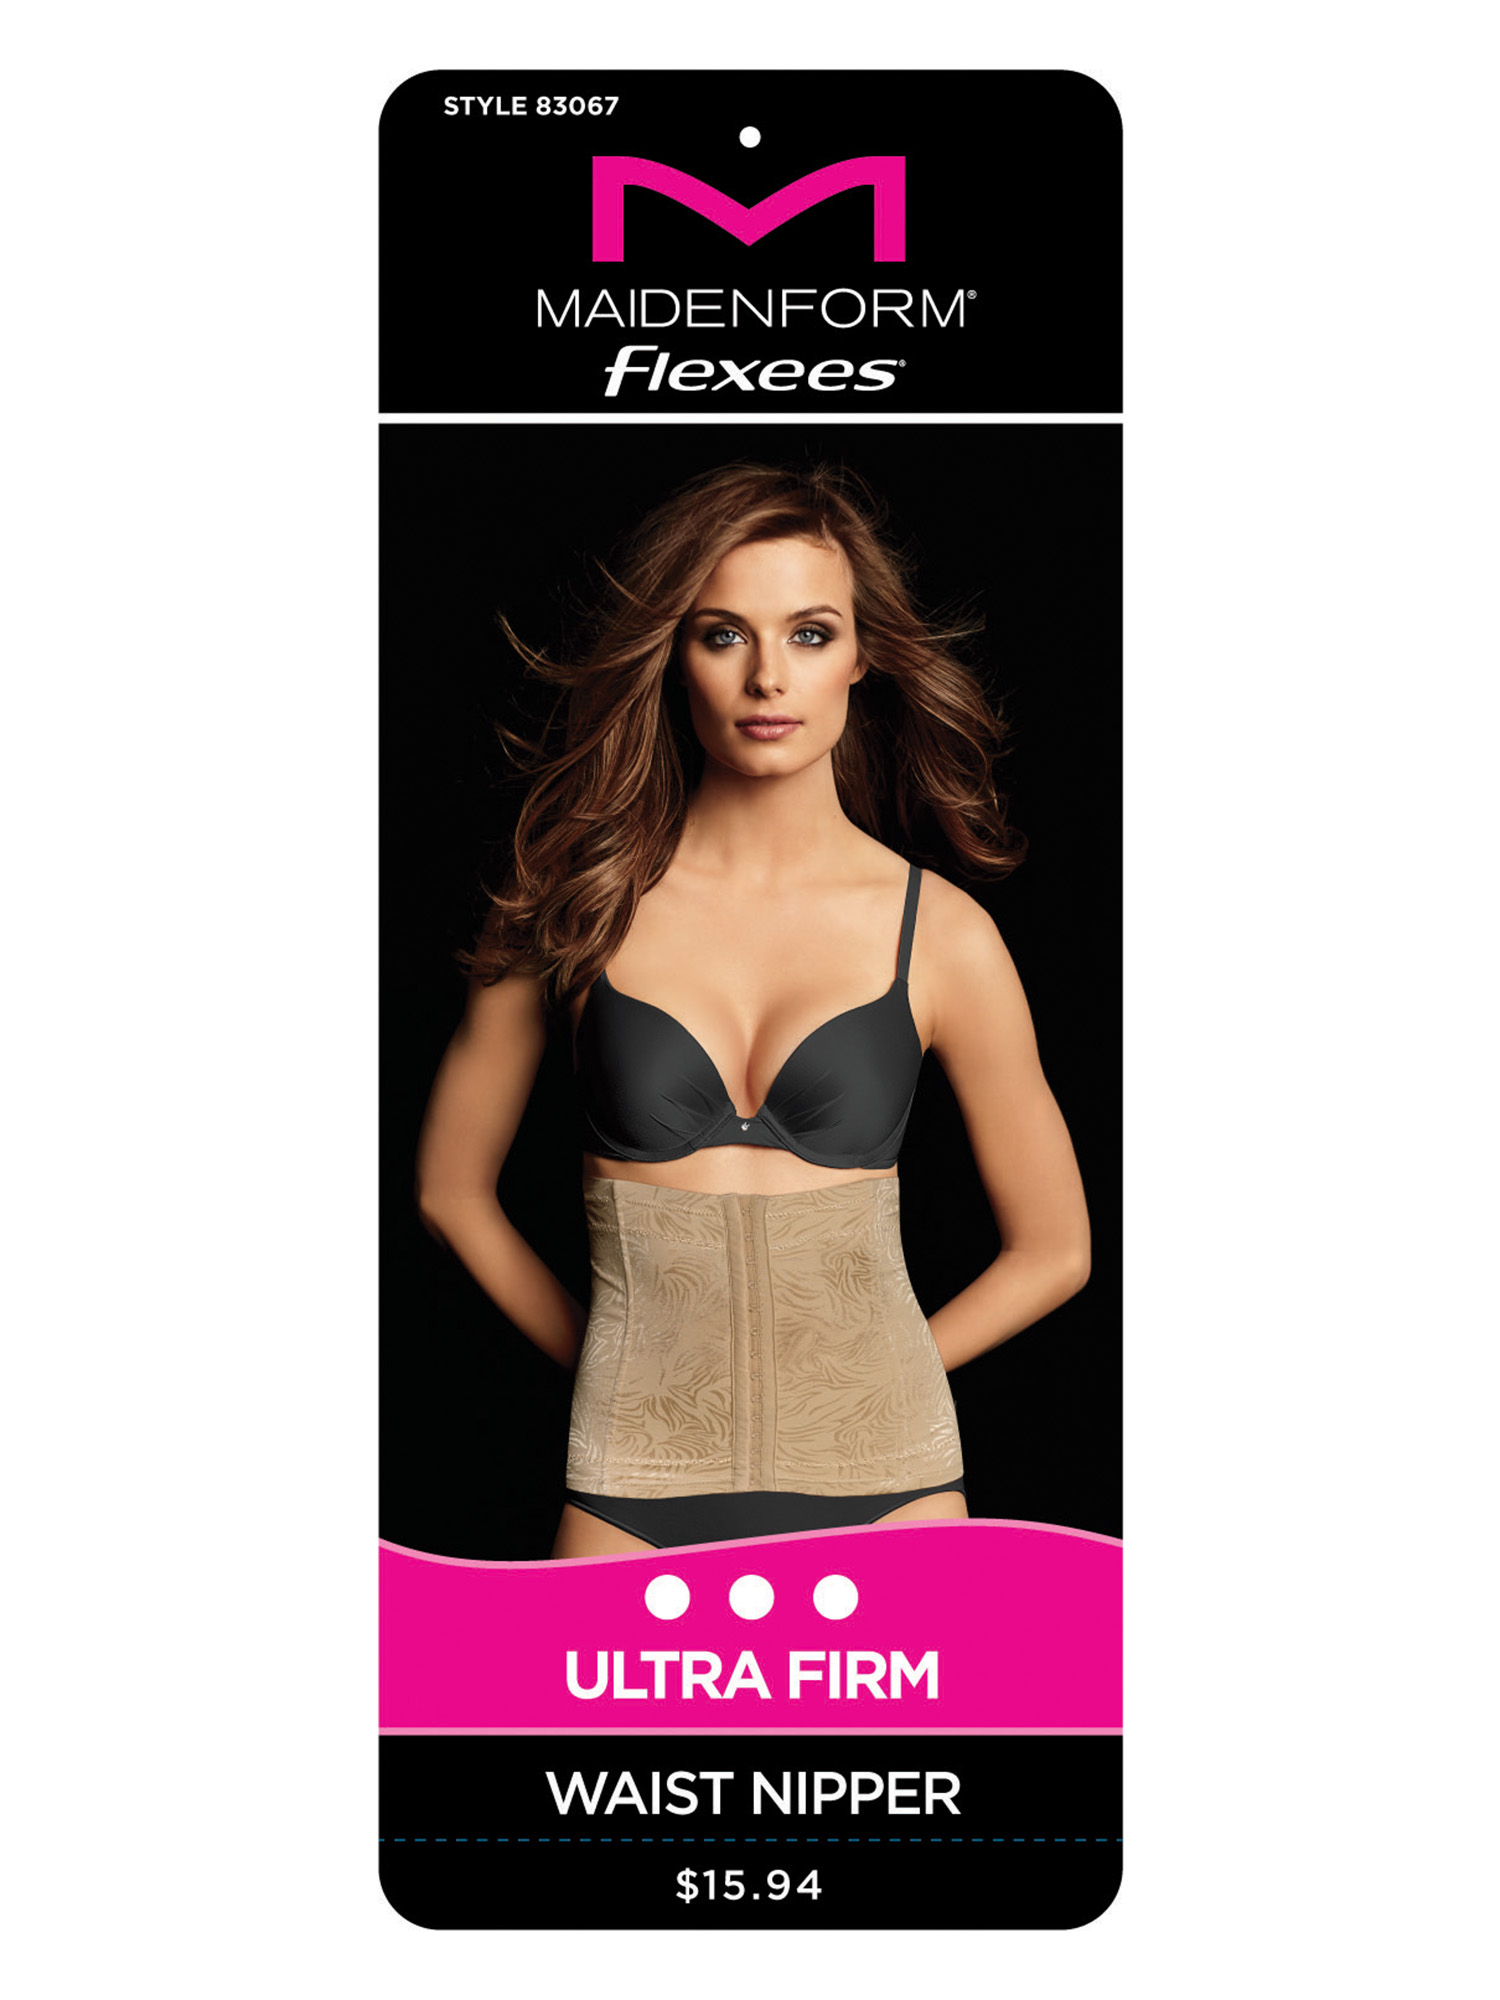 b901b71c4 Flexees by Maidenform - Flexees by maidenform ultra firm control shapewear  waistnipper - Walmart.com